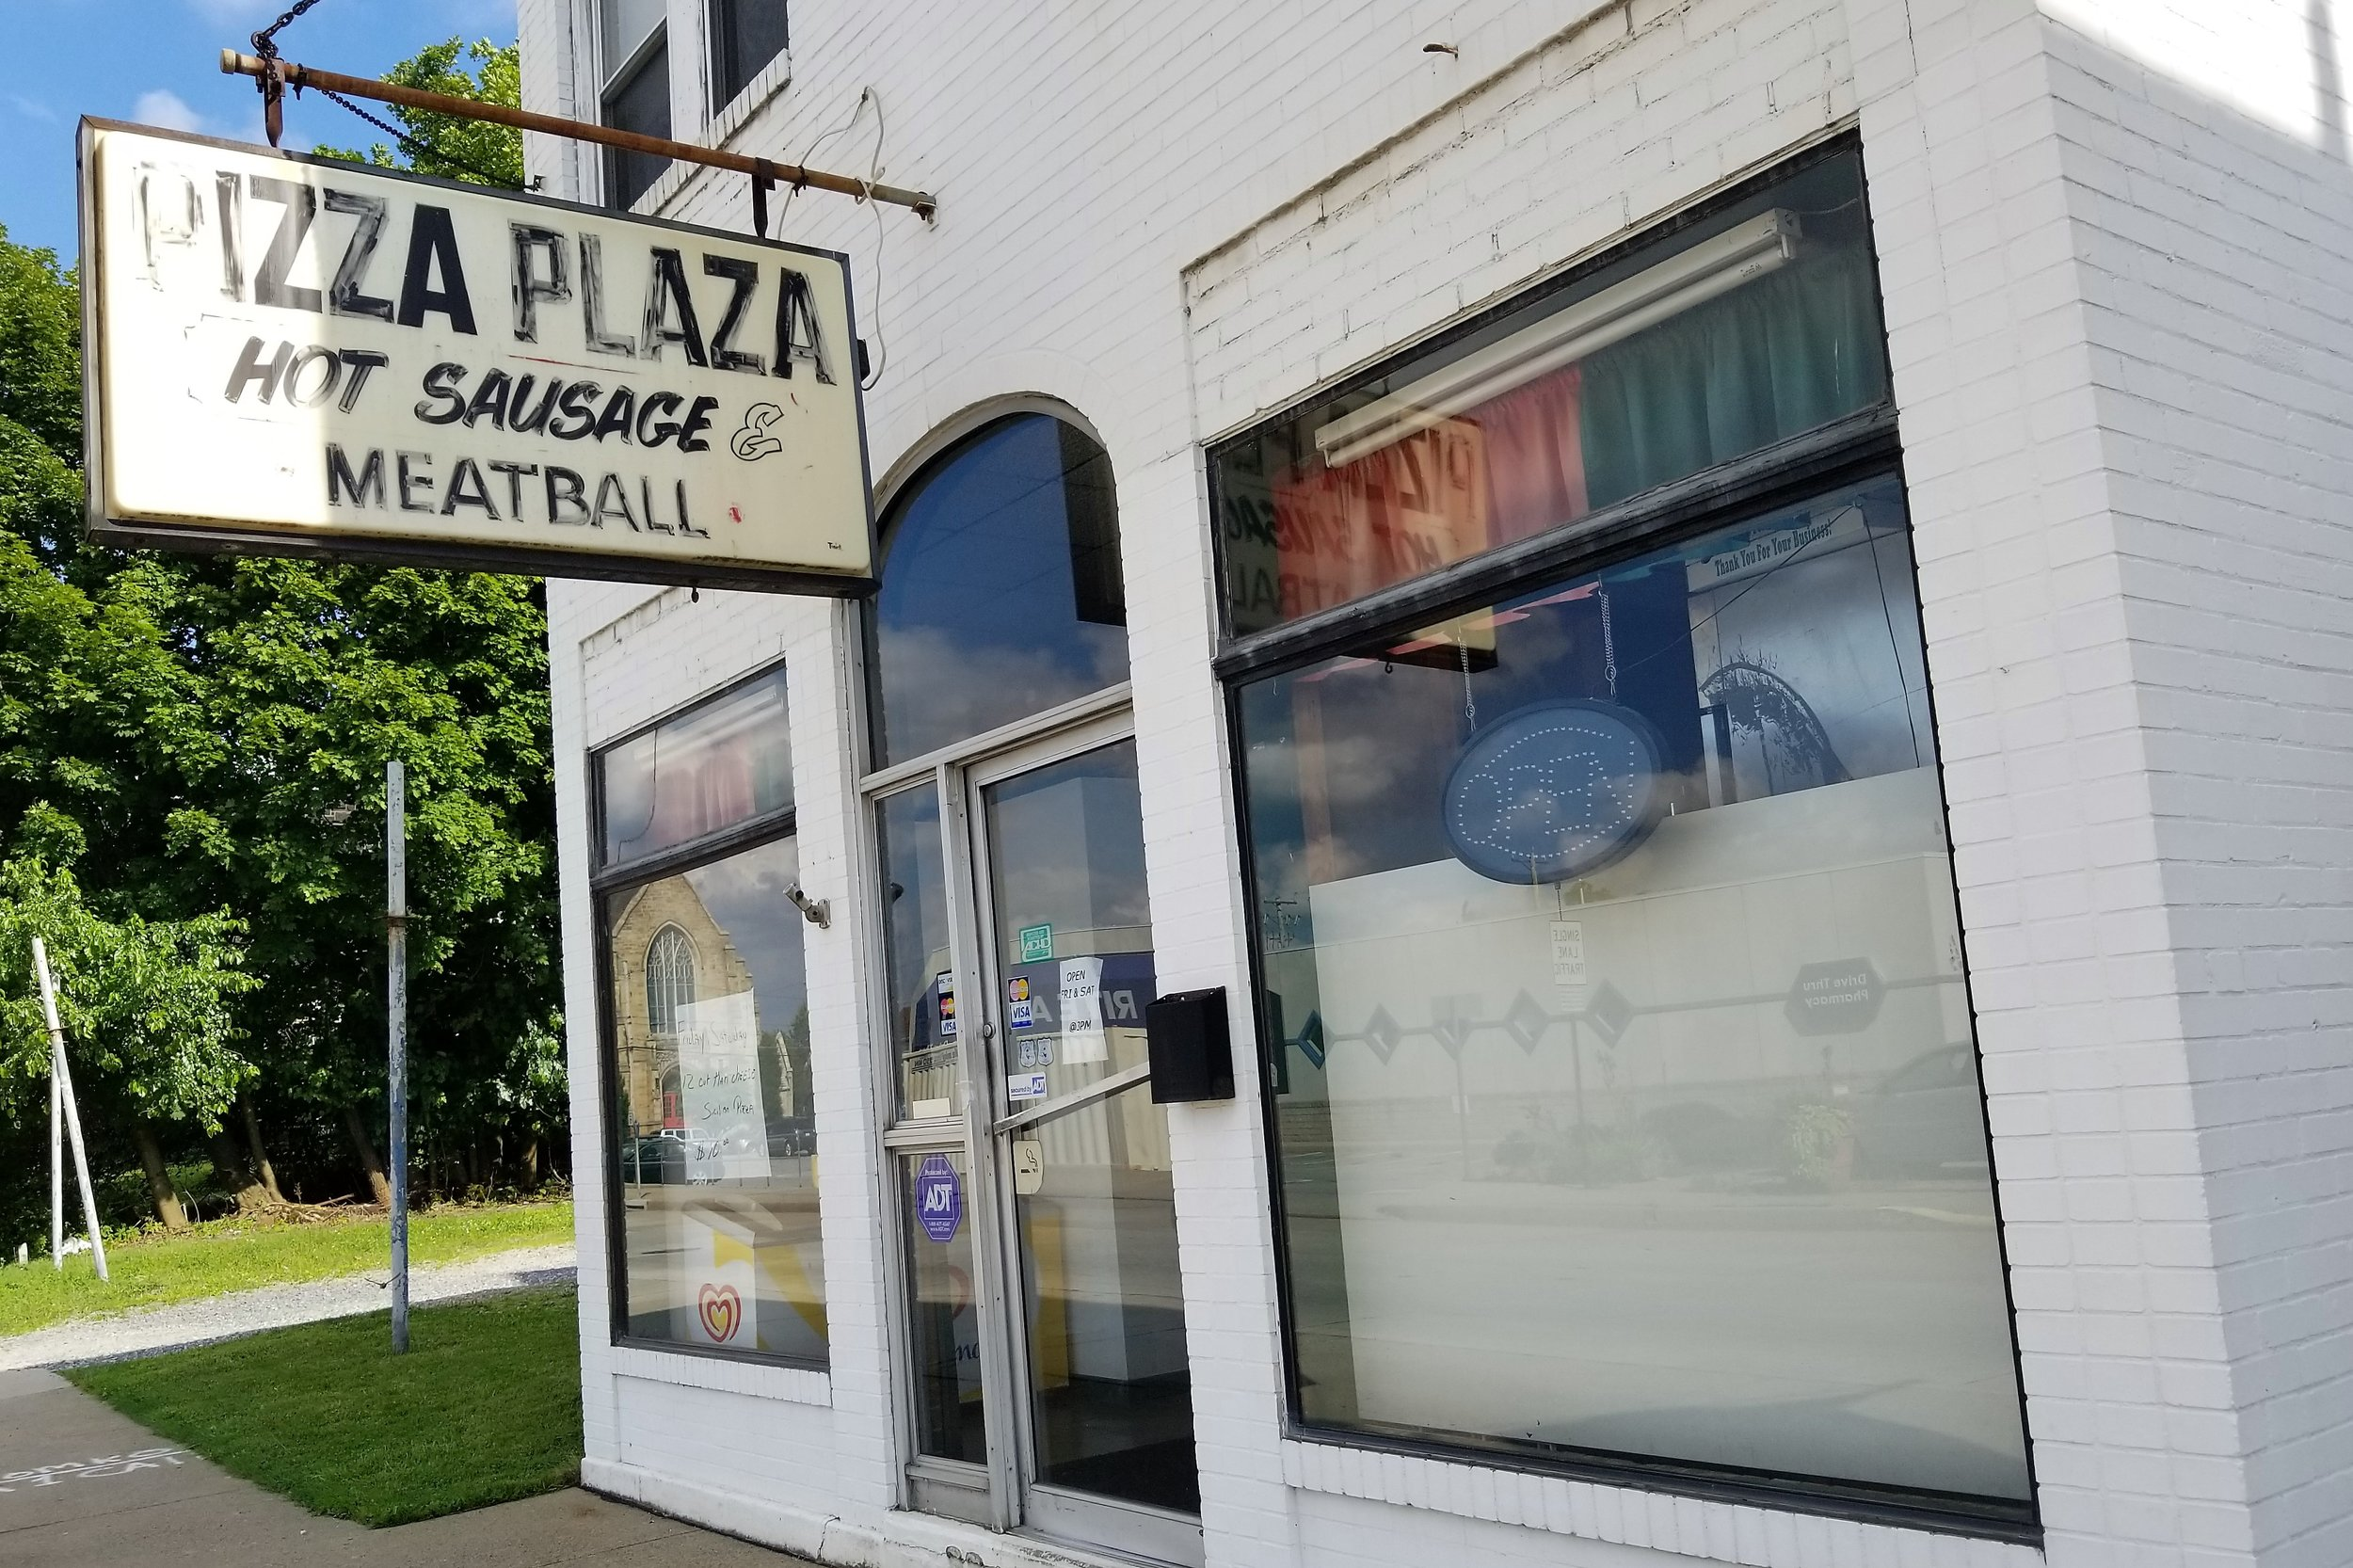 Pizza Plaza Hot Sausage & Meatball - 1110 5th St, (412) 264-8670